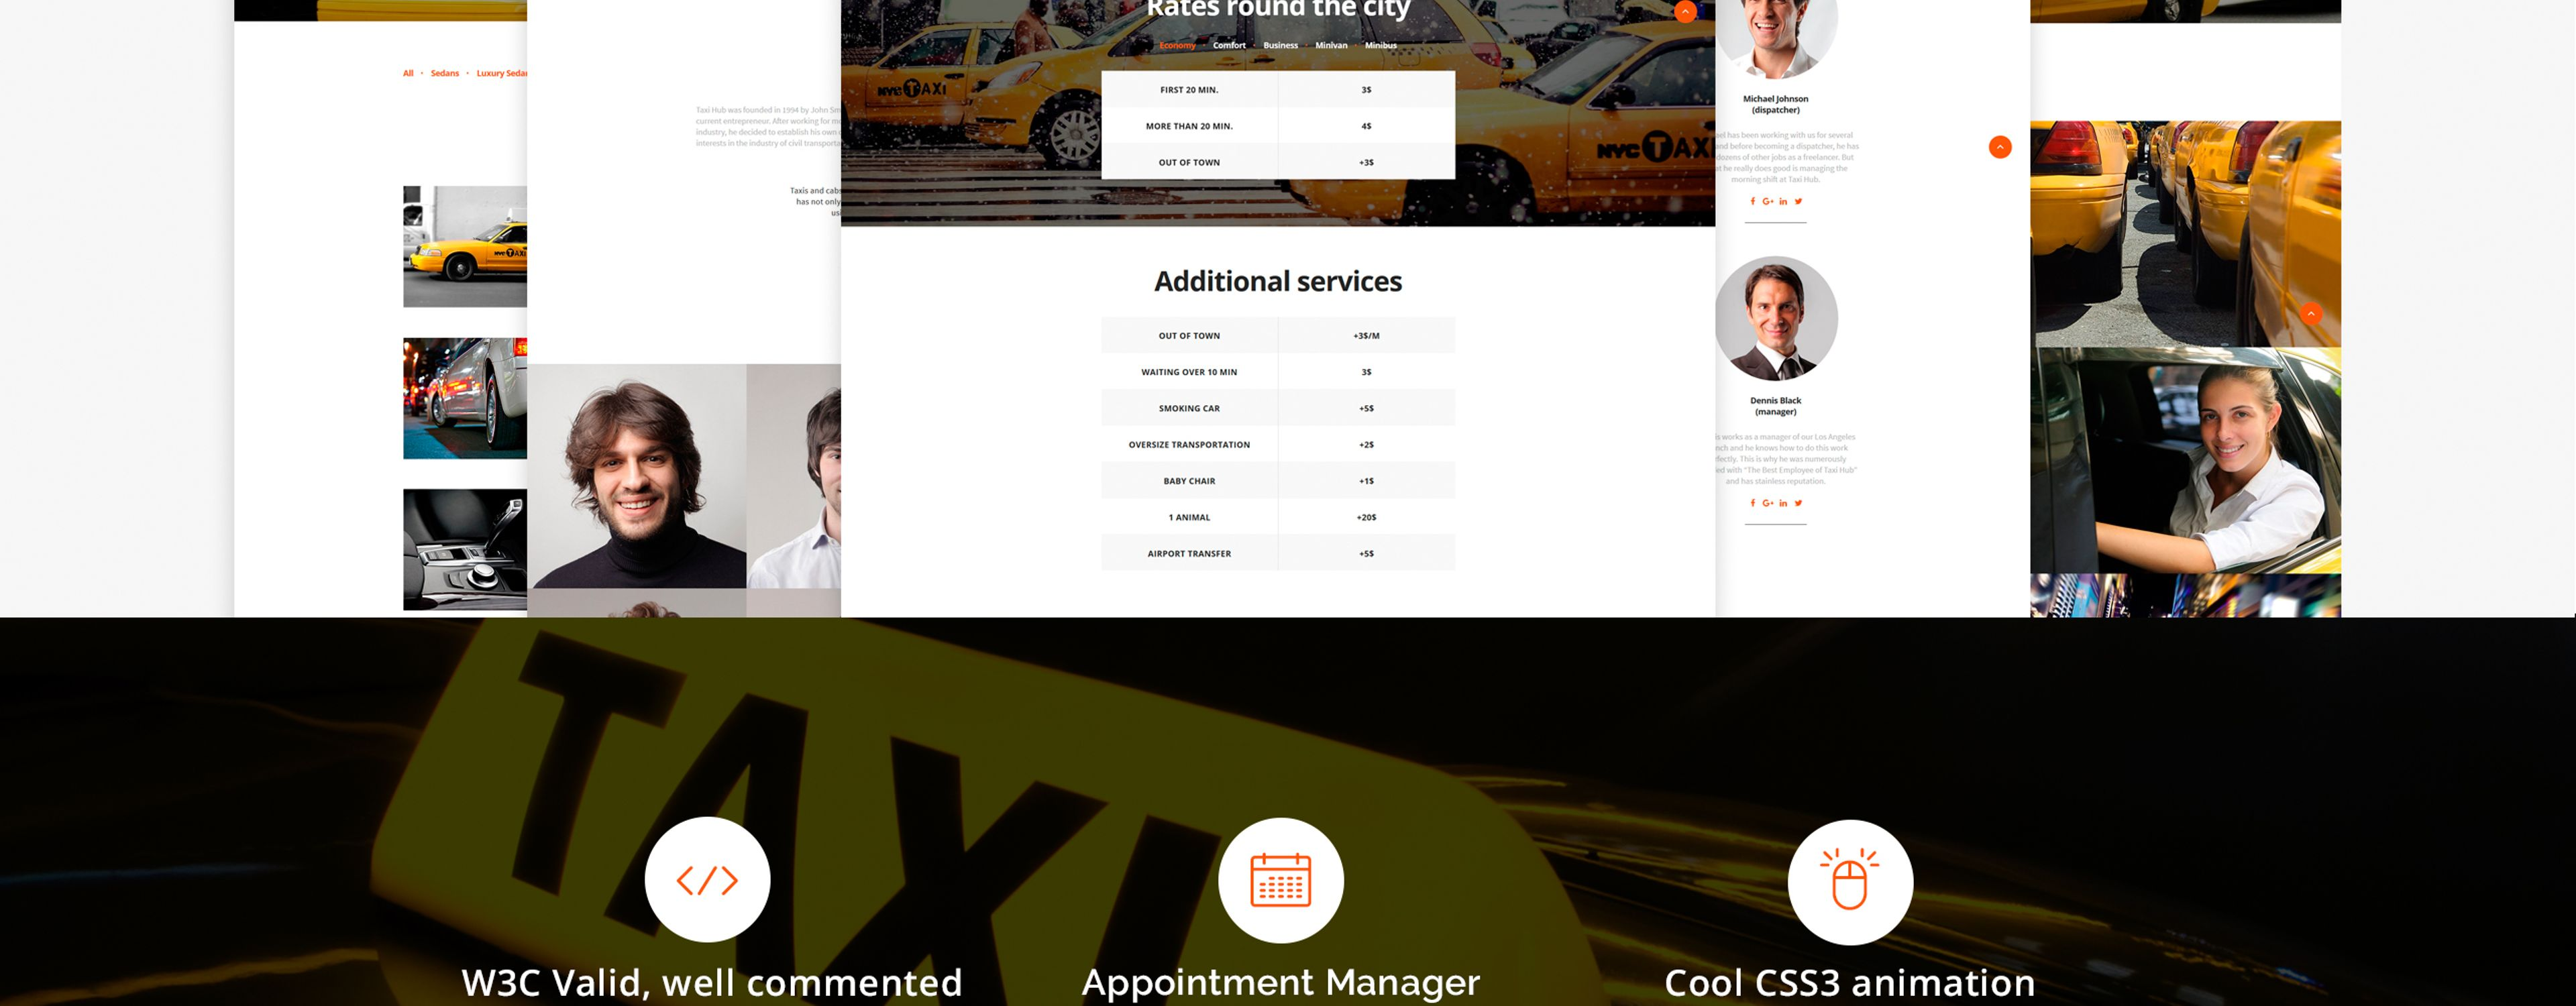 TaxiHub Website Template